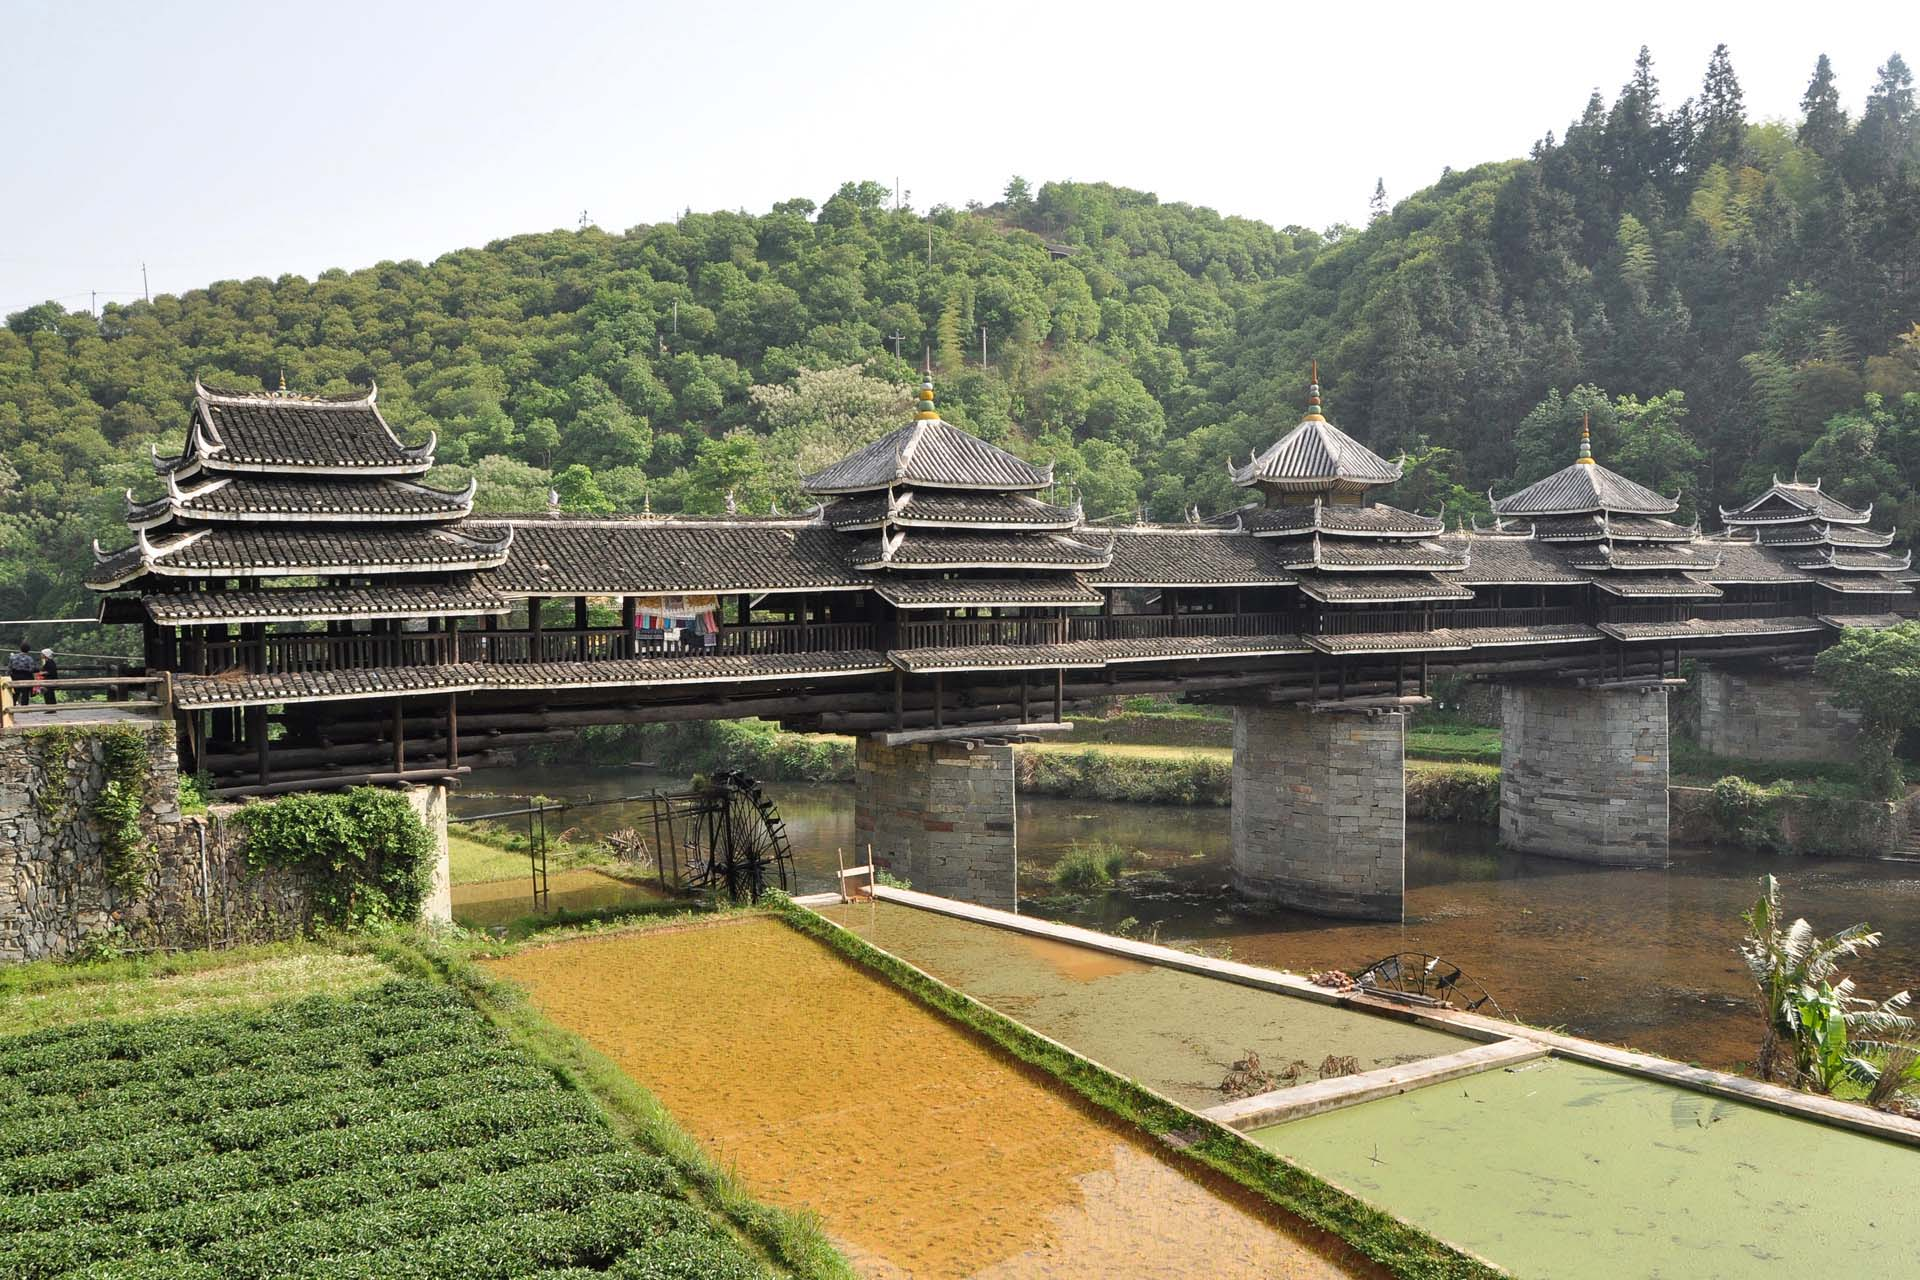 8. The Chengyang Wind And Rain Bridge, Sanjiang County, China 2